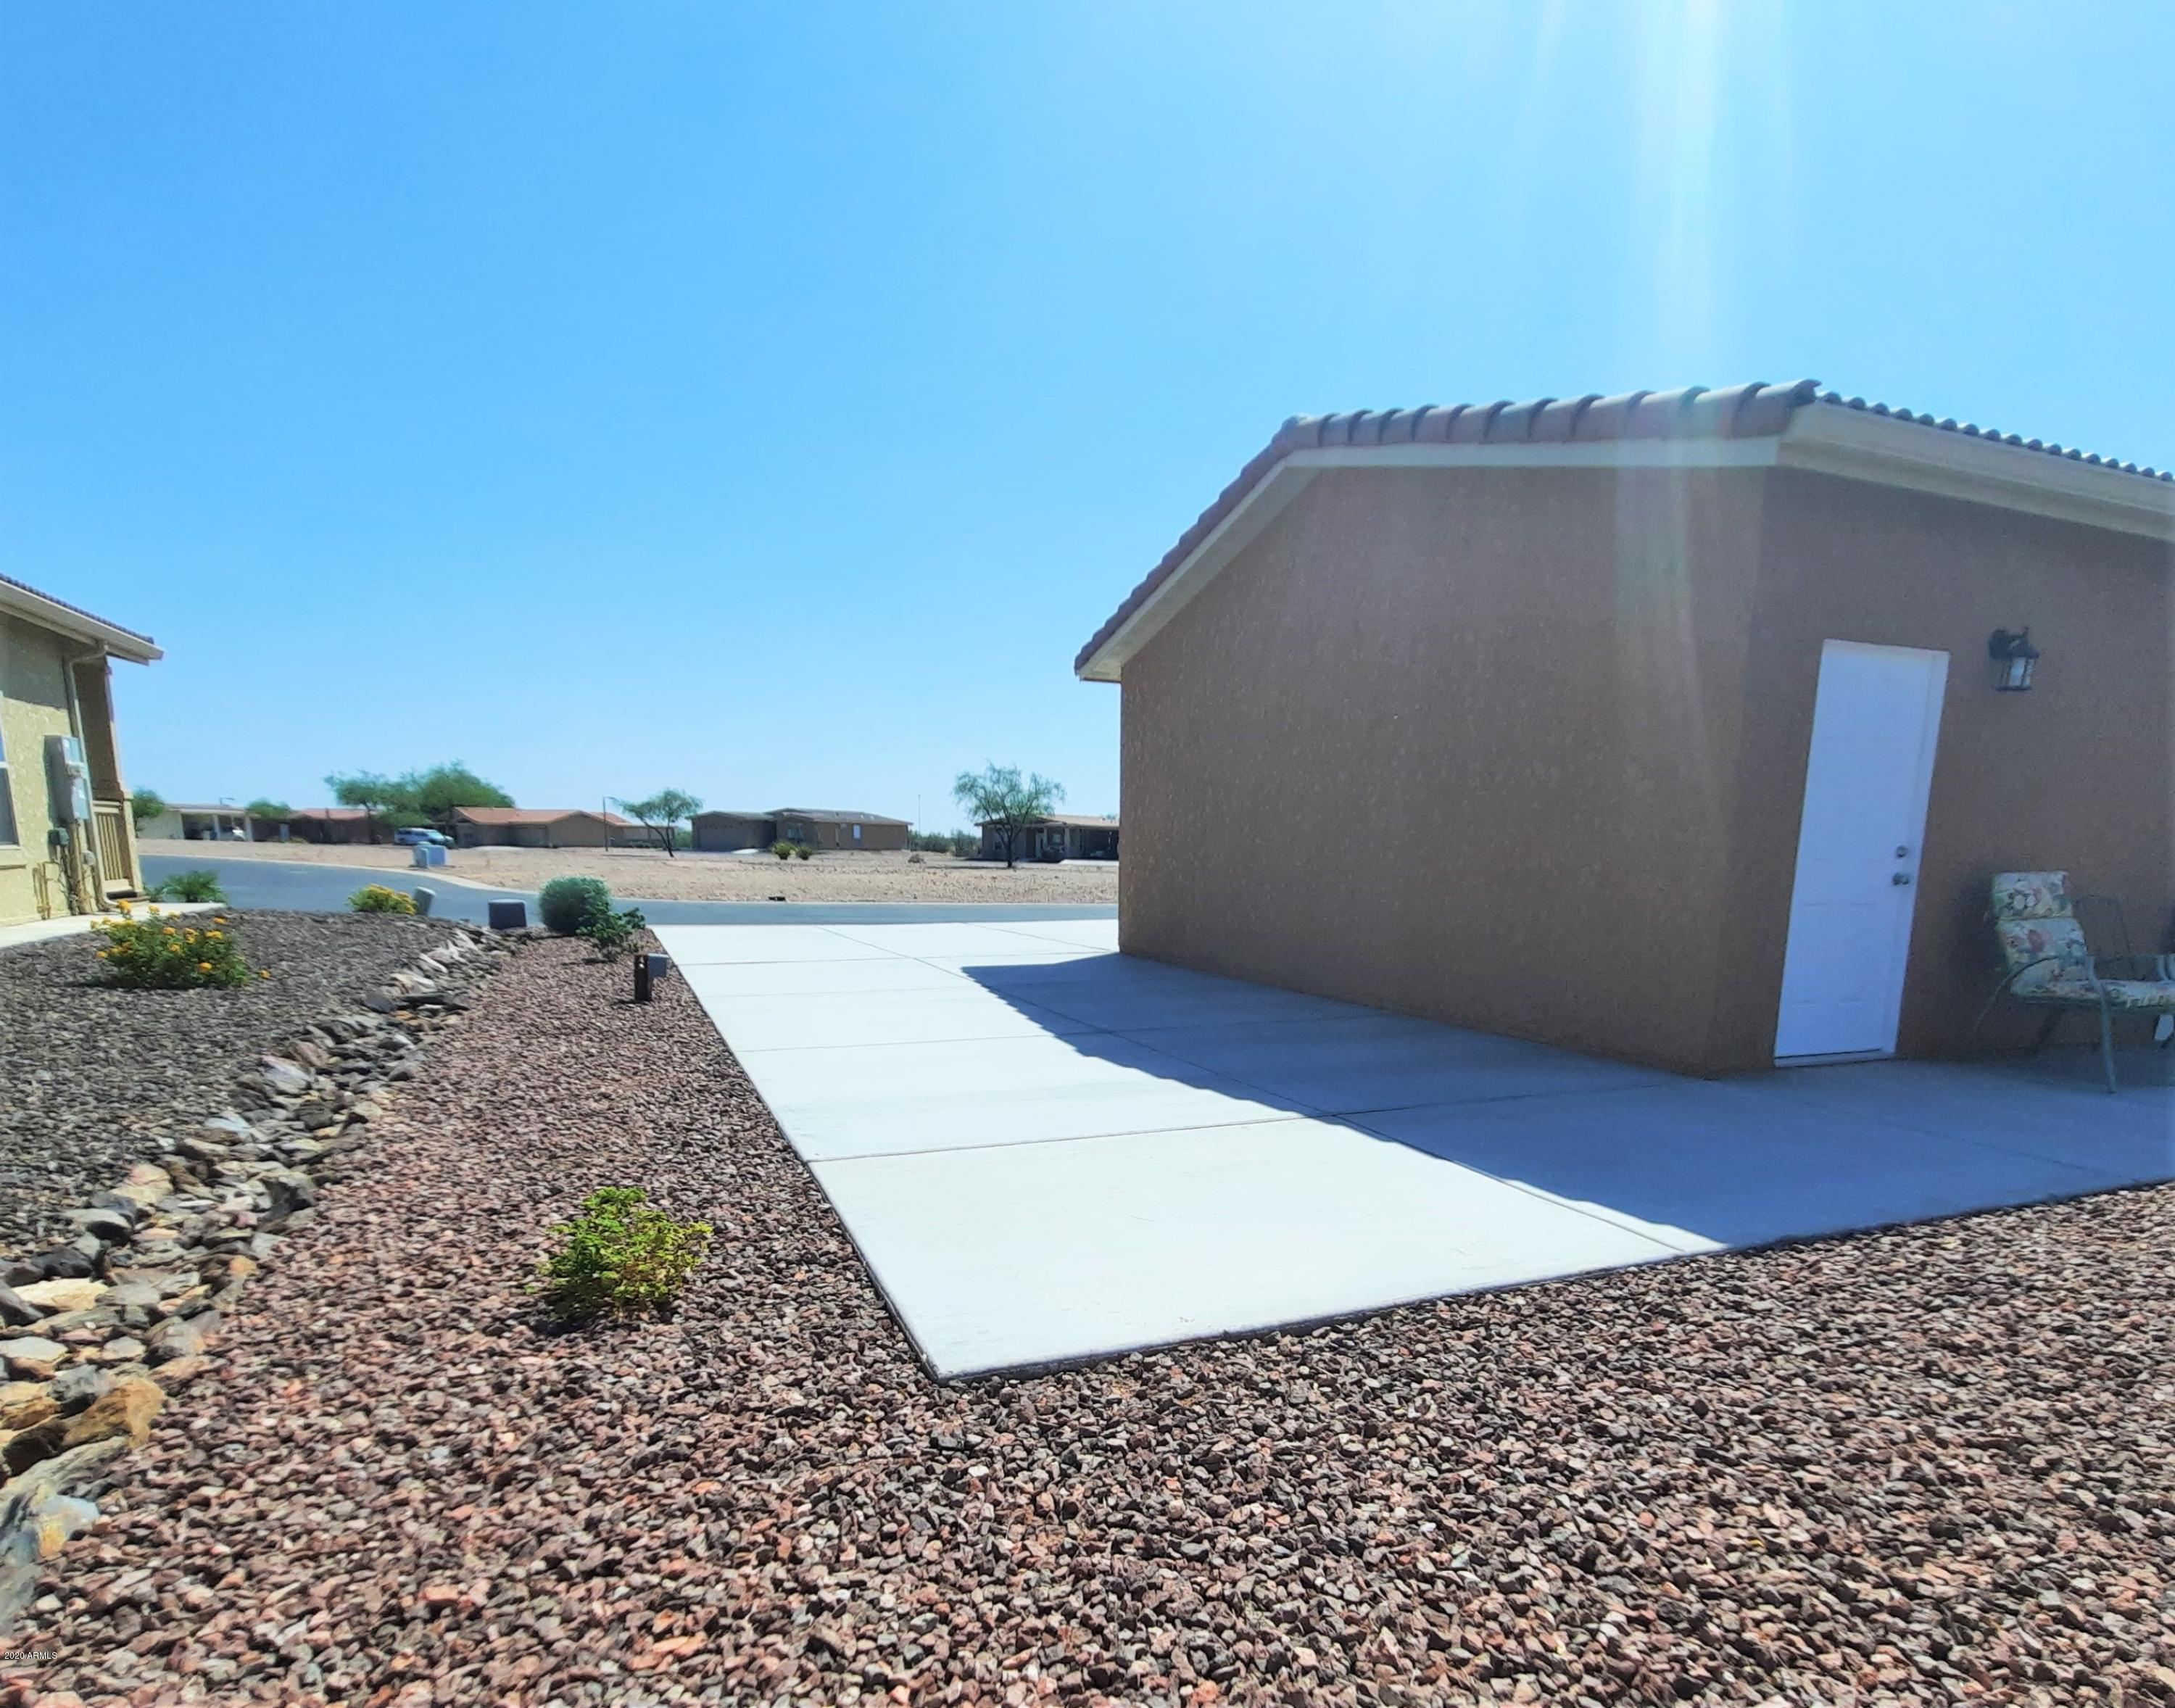 MLS 6145856 7373 E US HIGHWAY 60 -- Unit 317, Gold Canyon, AZ 85118 Gold Canyon AZ Affordable